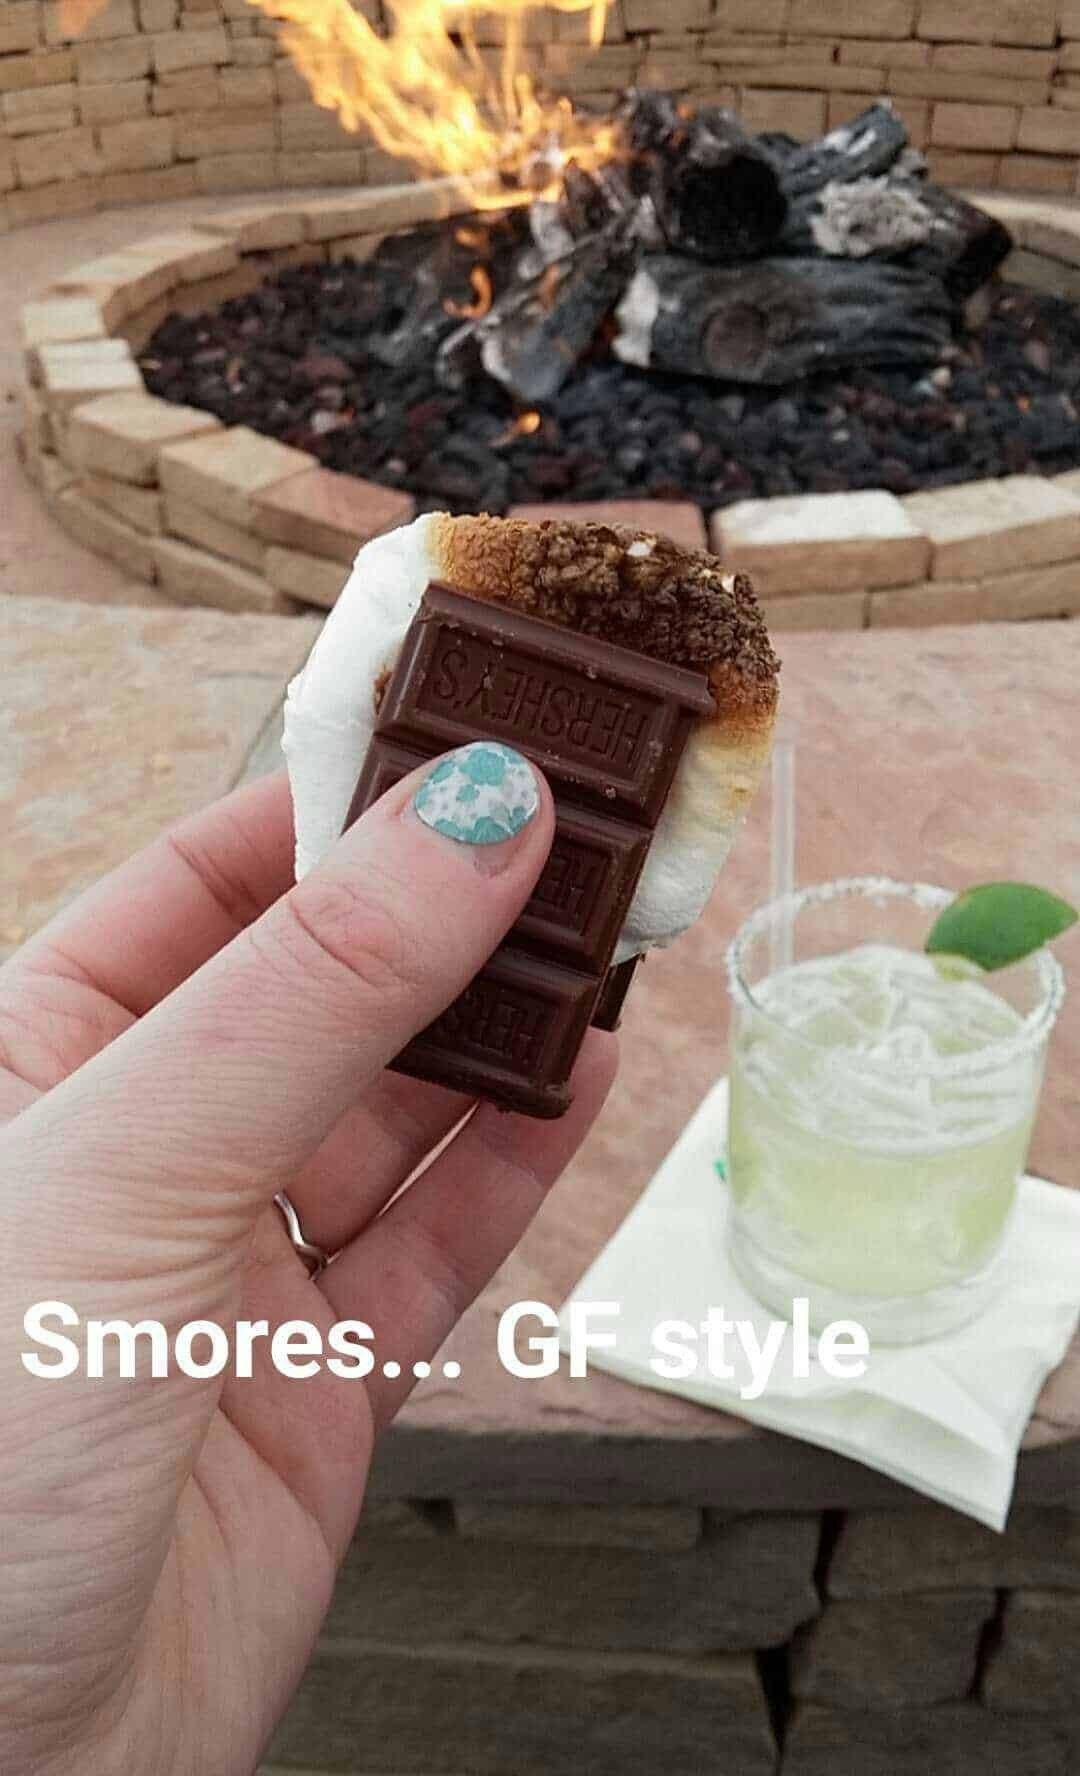 Making smores and sipping margaritas at the Tamaya